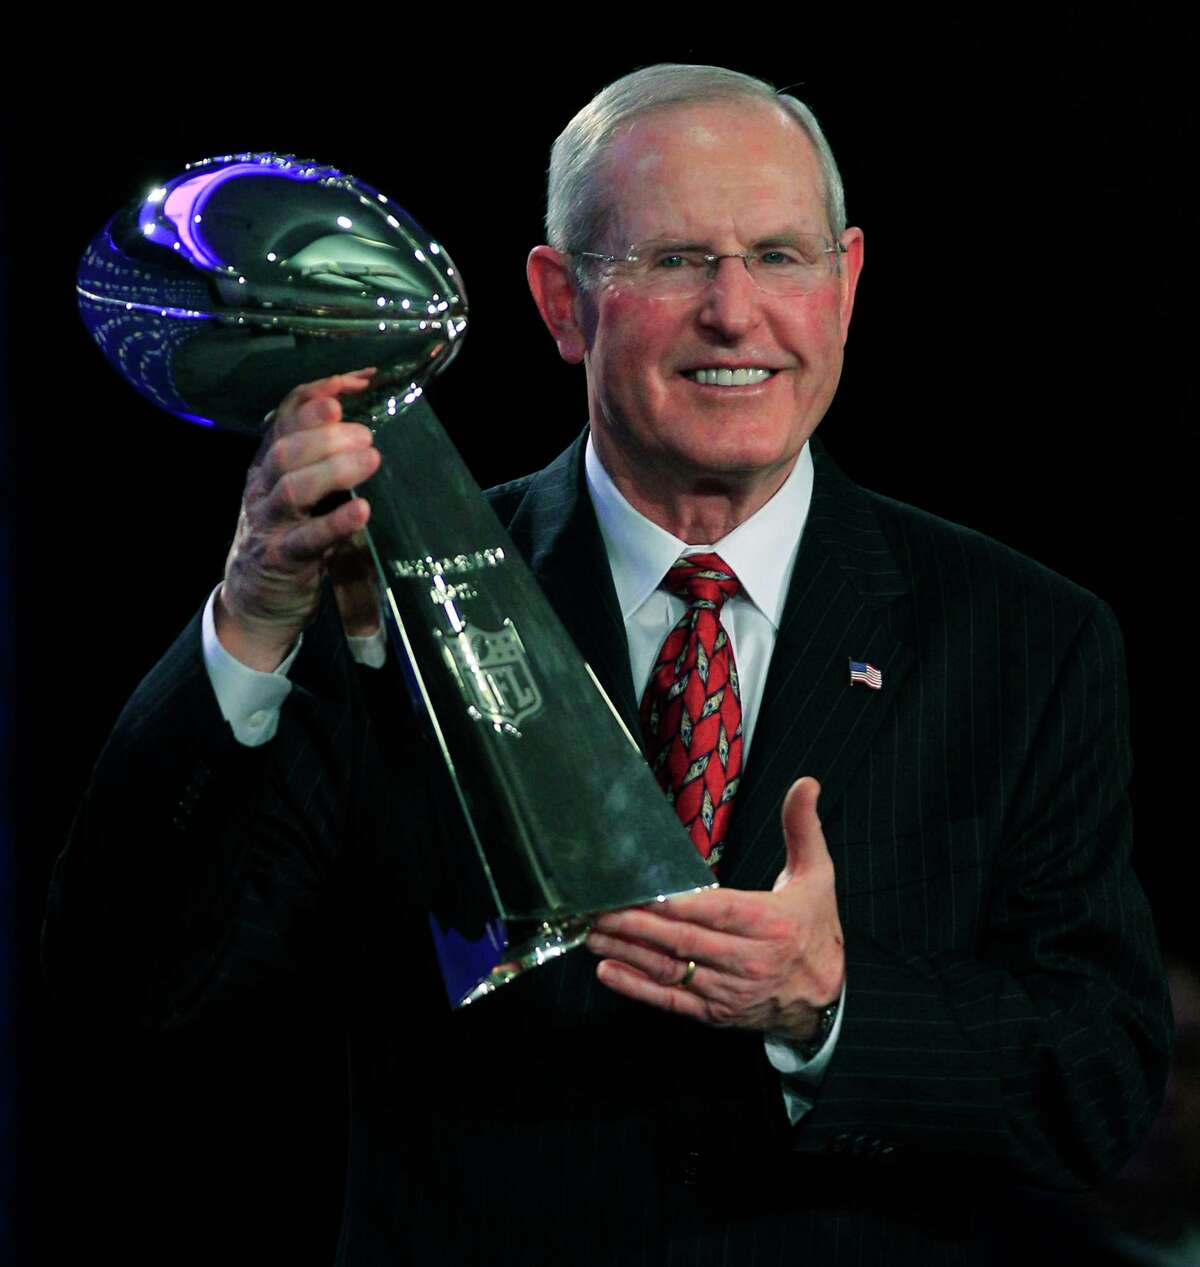 New York head coach Tom Coughlin holds up the Vince Lombardi Trophy during a news conference after the Giants defeated the Patriots to win Super Bowl XLVI in 2012 in Indianapolis.